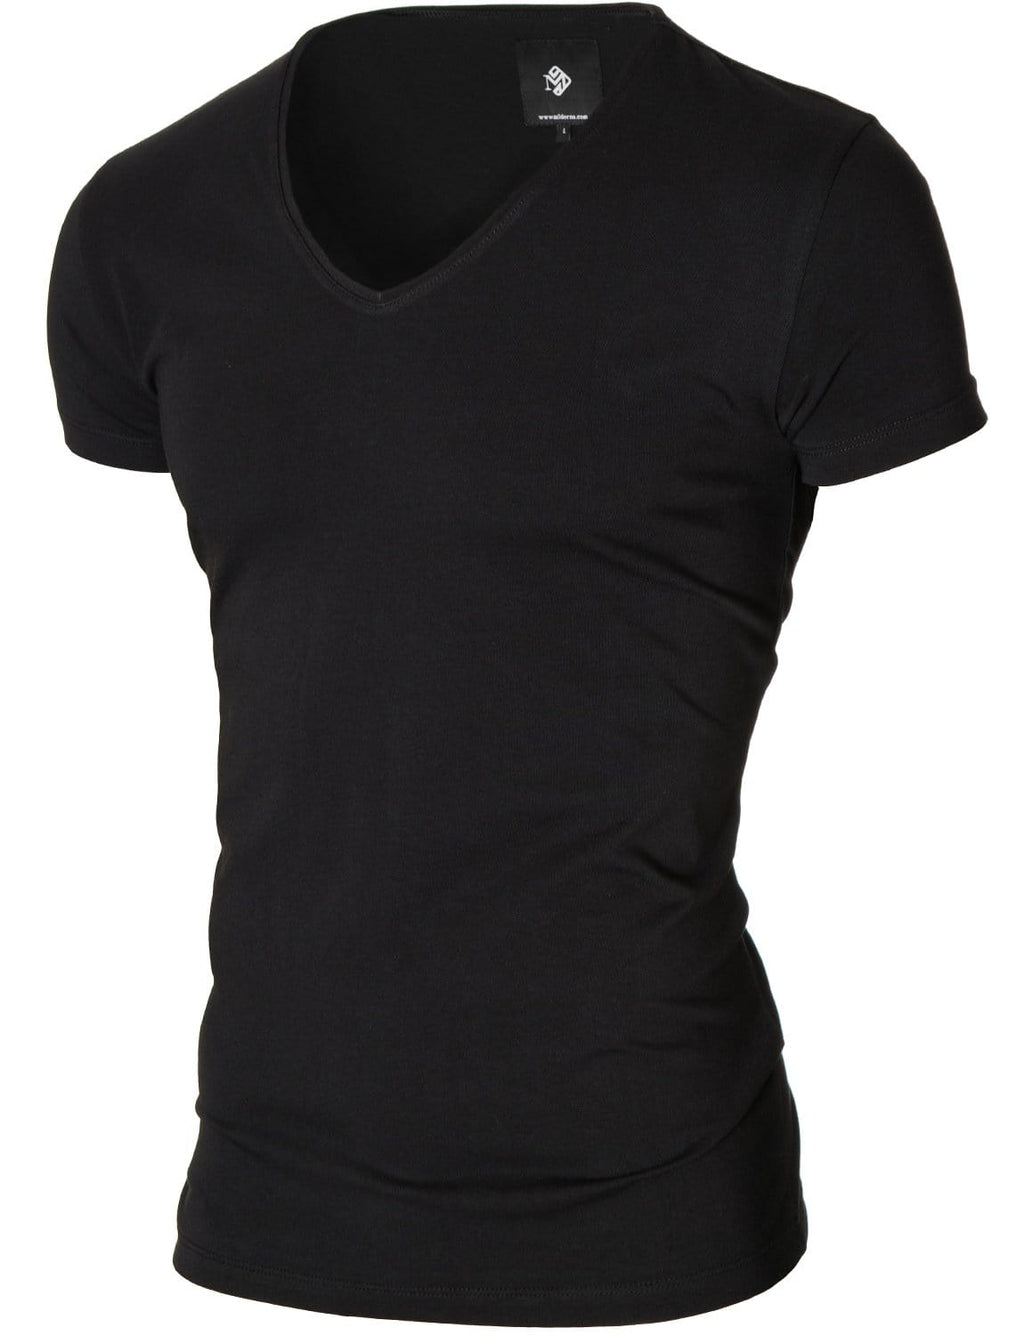 Mens basic V-neck t-shirt black (MOD2001VN)